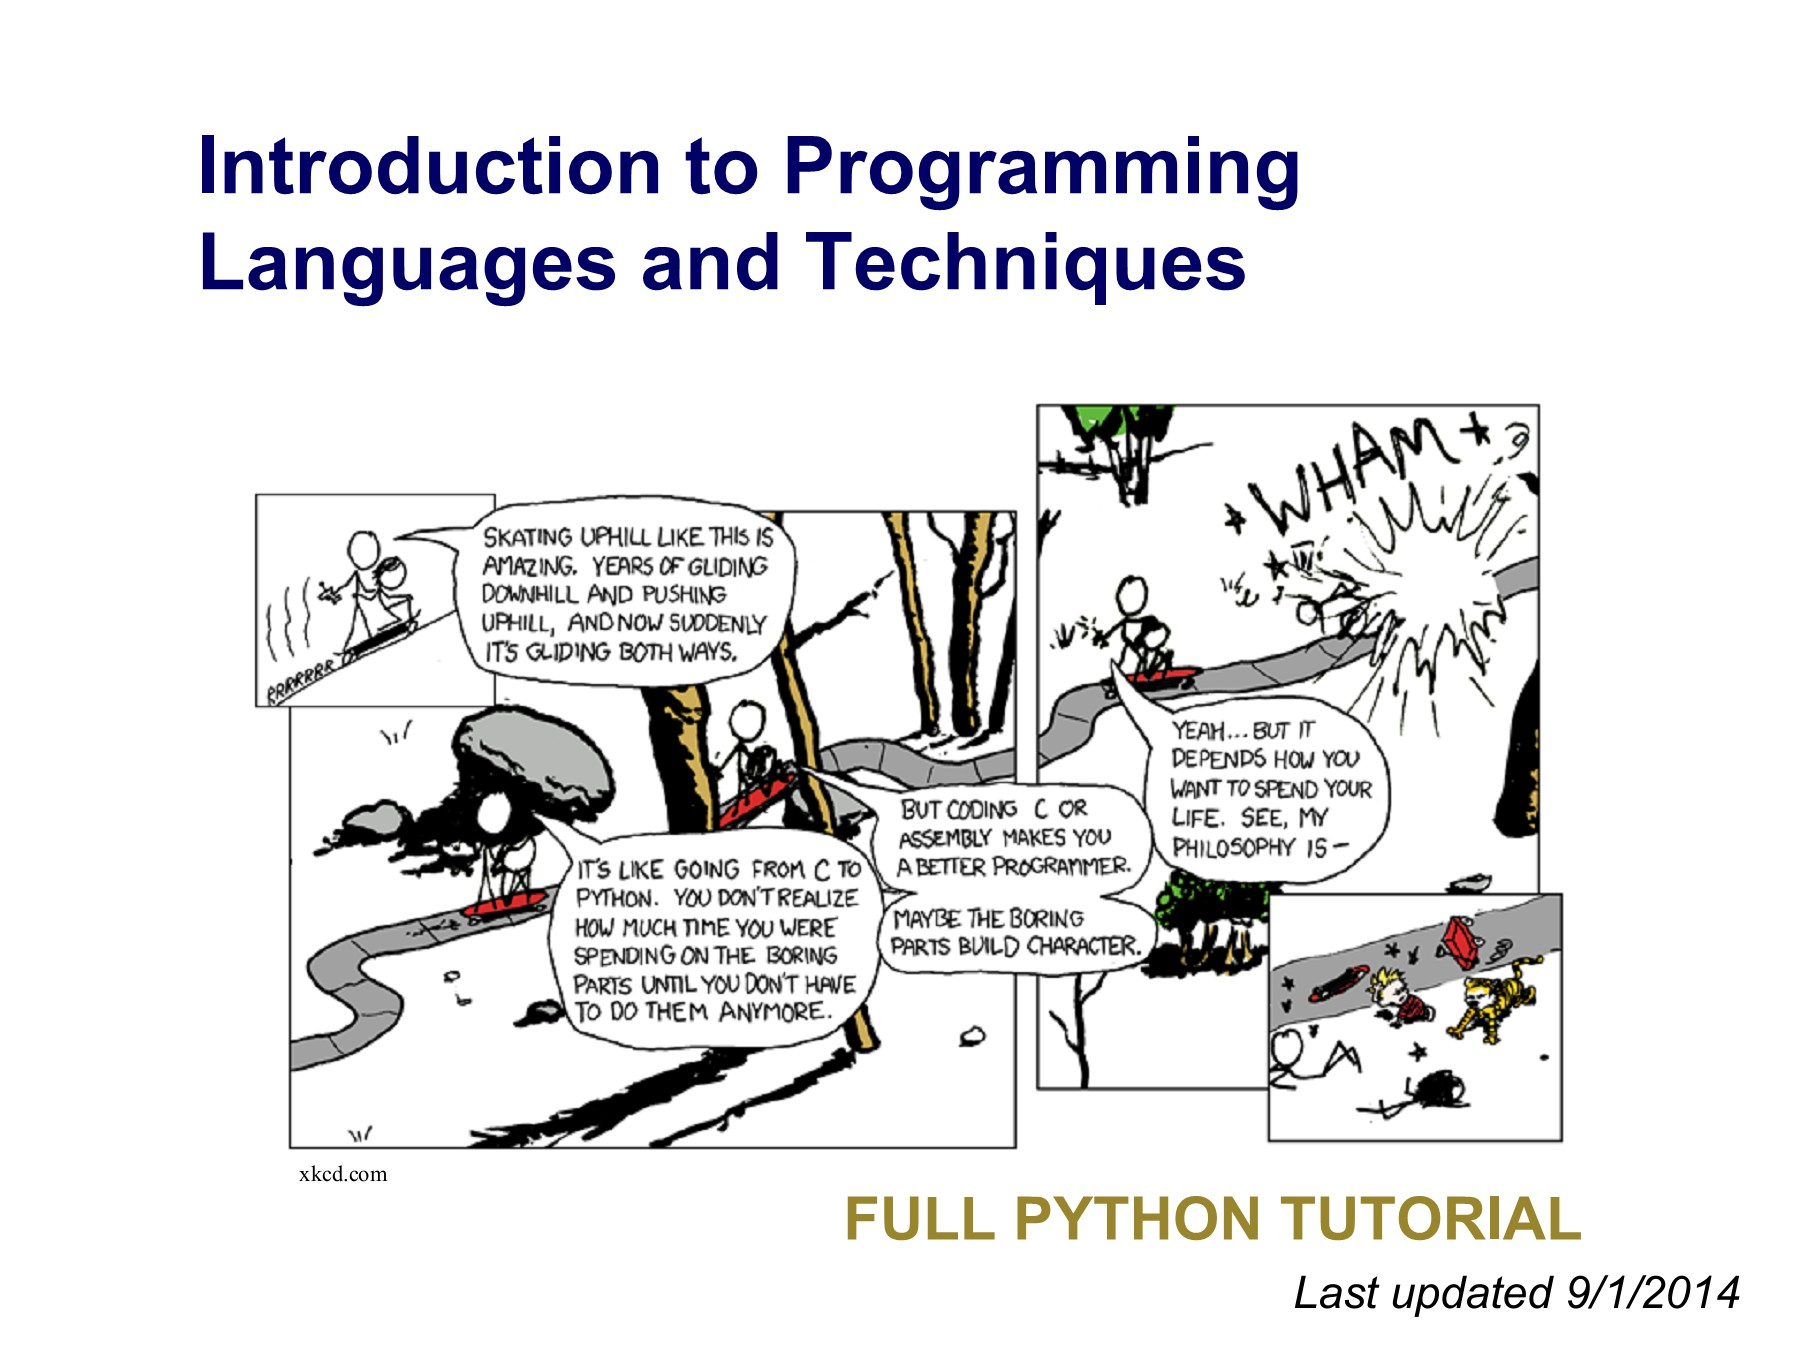 Introduction to Programming Languages and Techniques. Full Python Tutoria